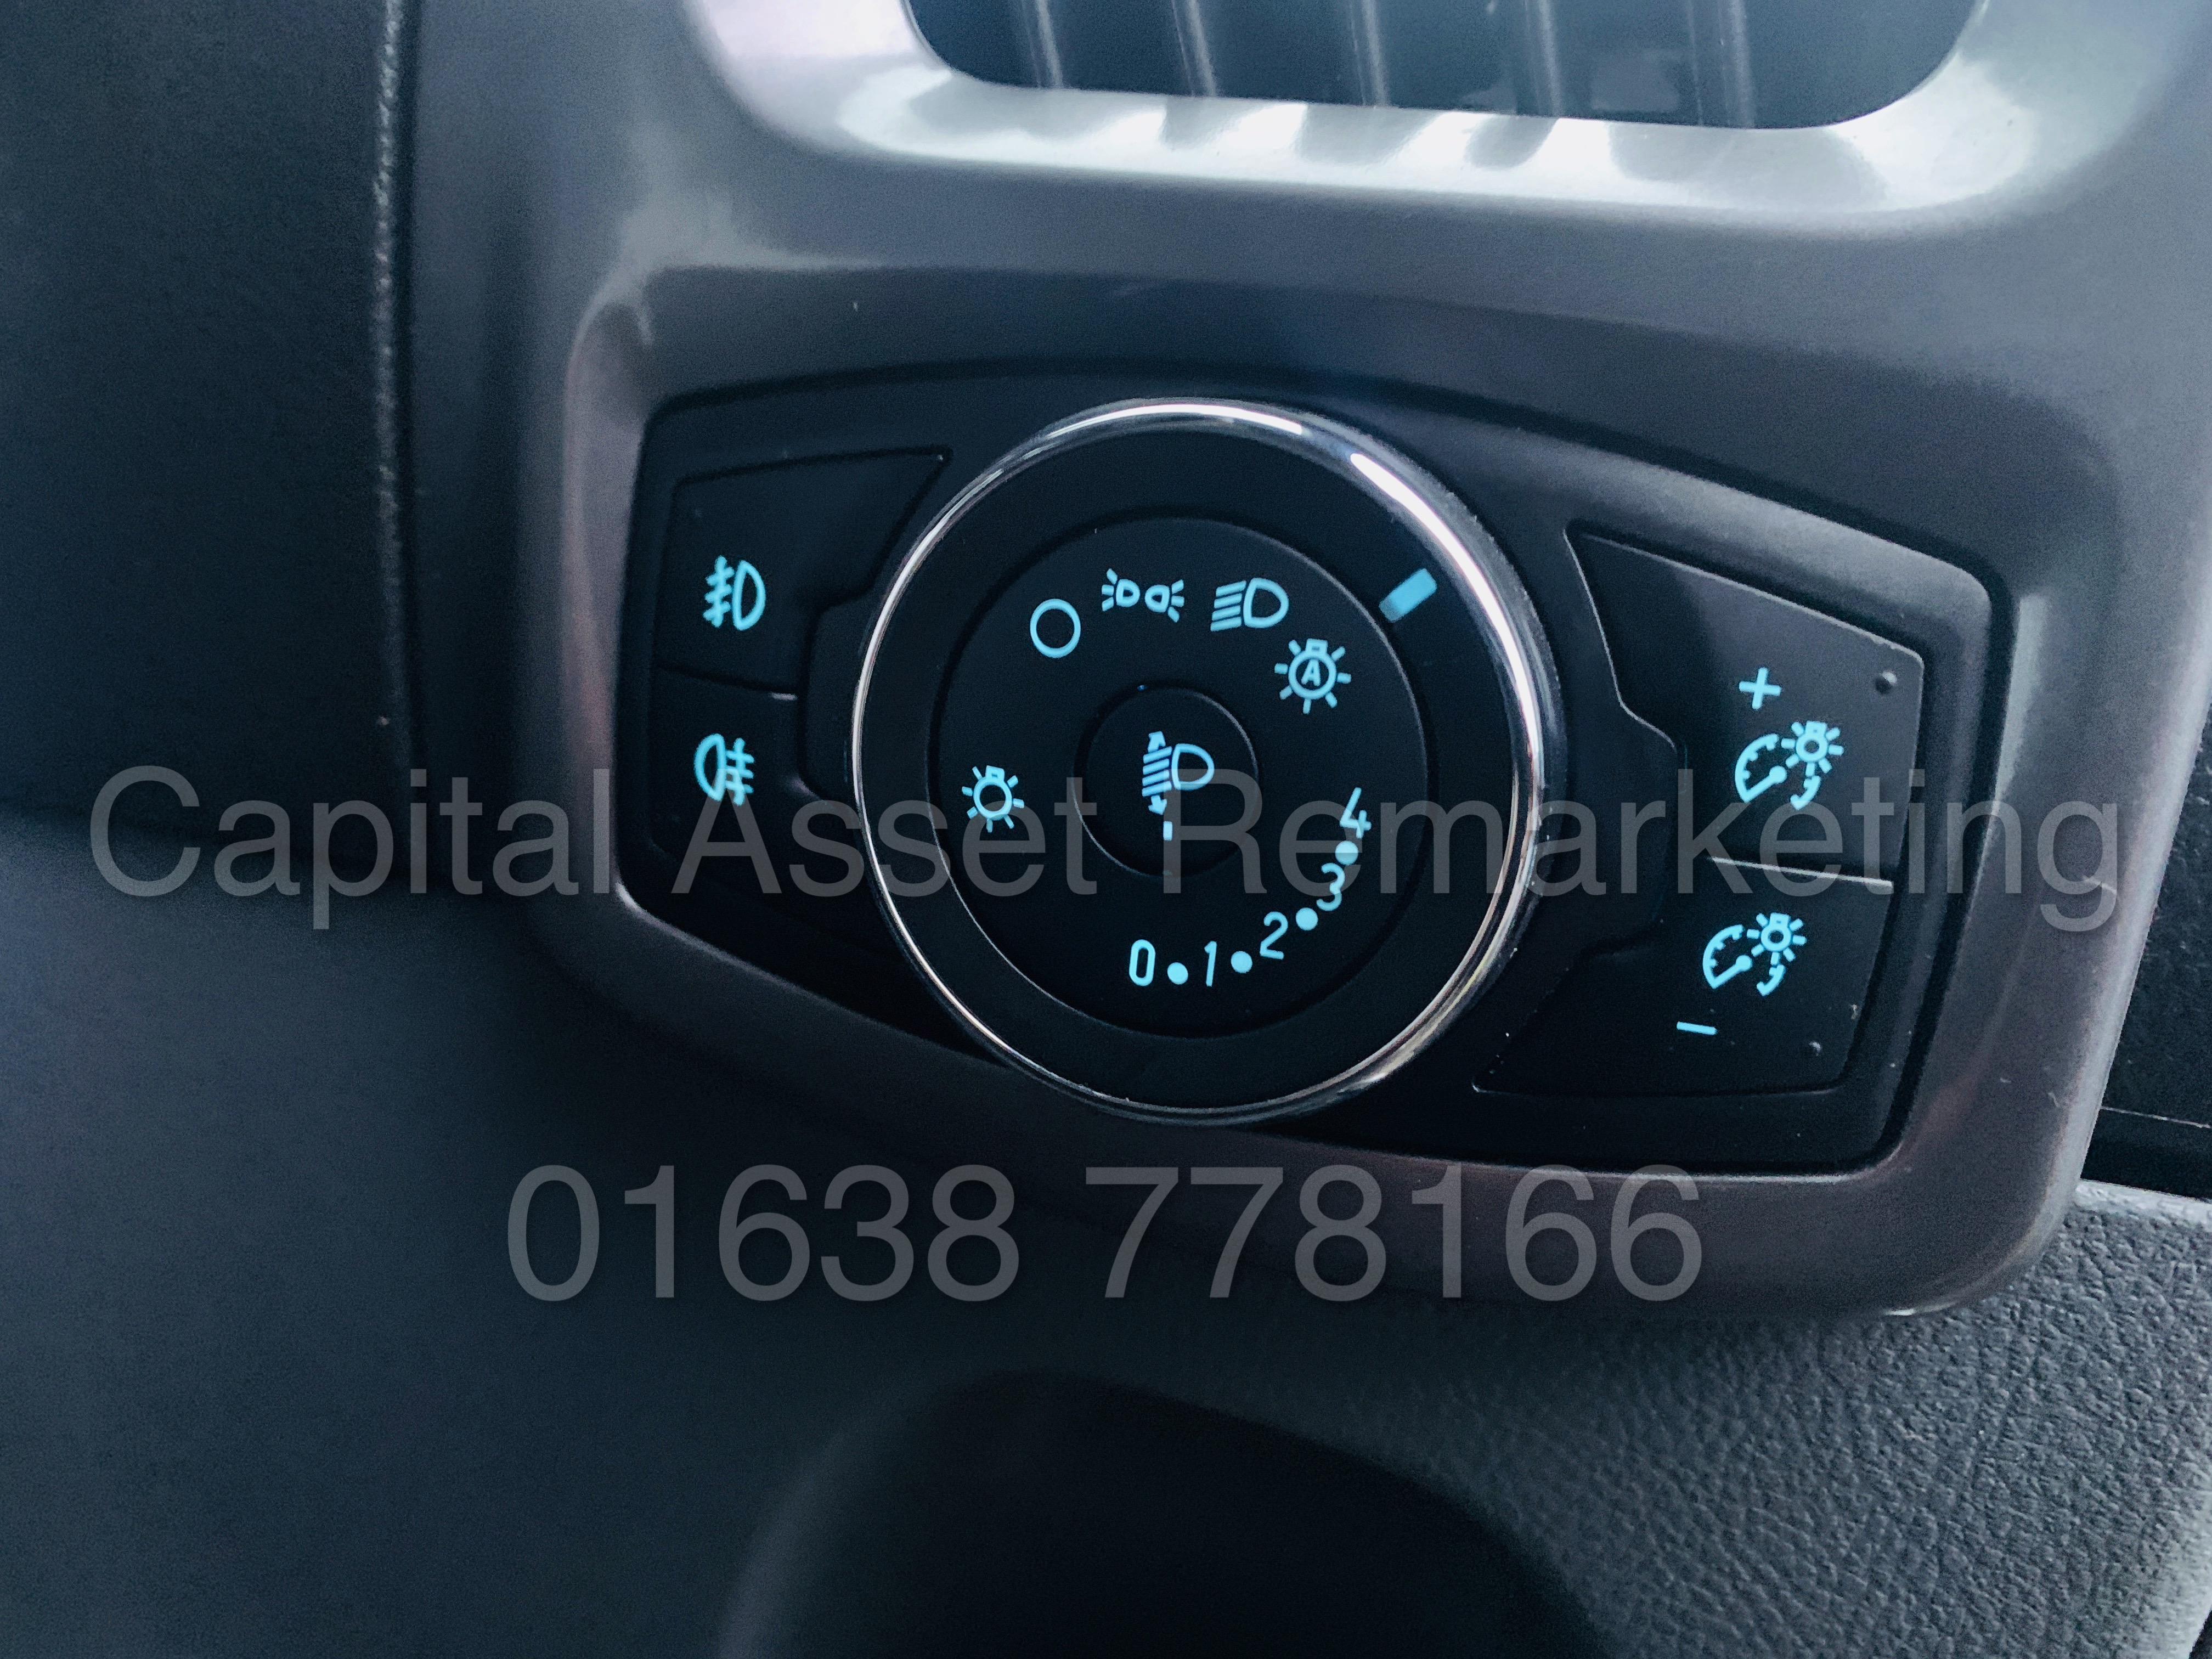 (On Sale) FORD TRANSIT *TREND* 290 SWB (2017 - EURO 6 / AD-BLUE) '2.0 TDCI - 130 BHP - 6 SPEED' - Image 30 of 41